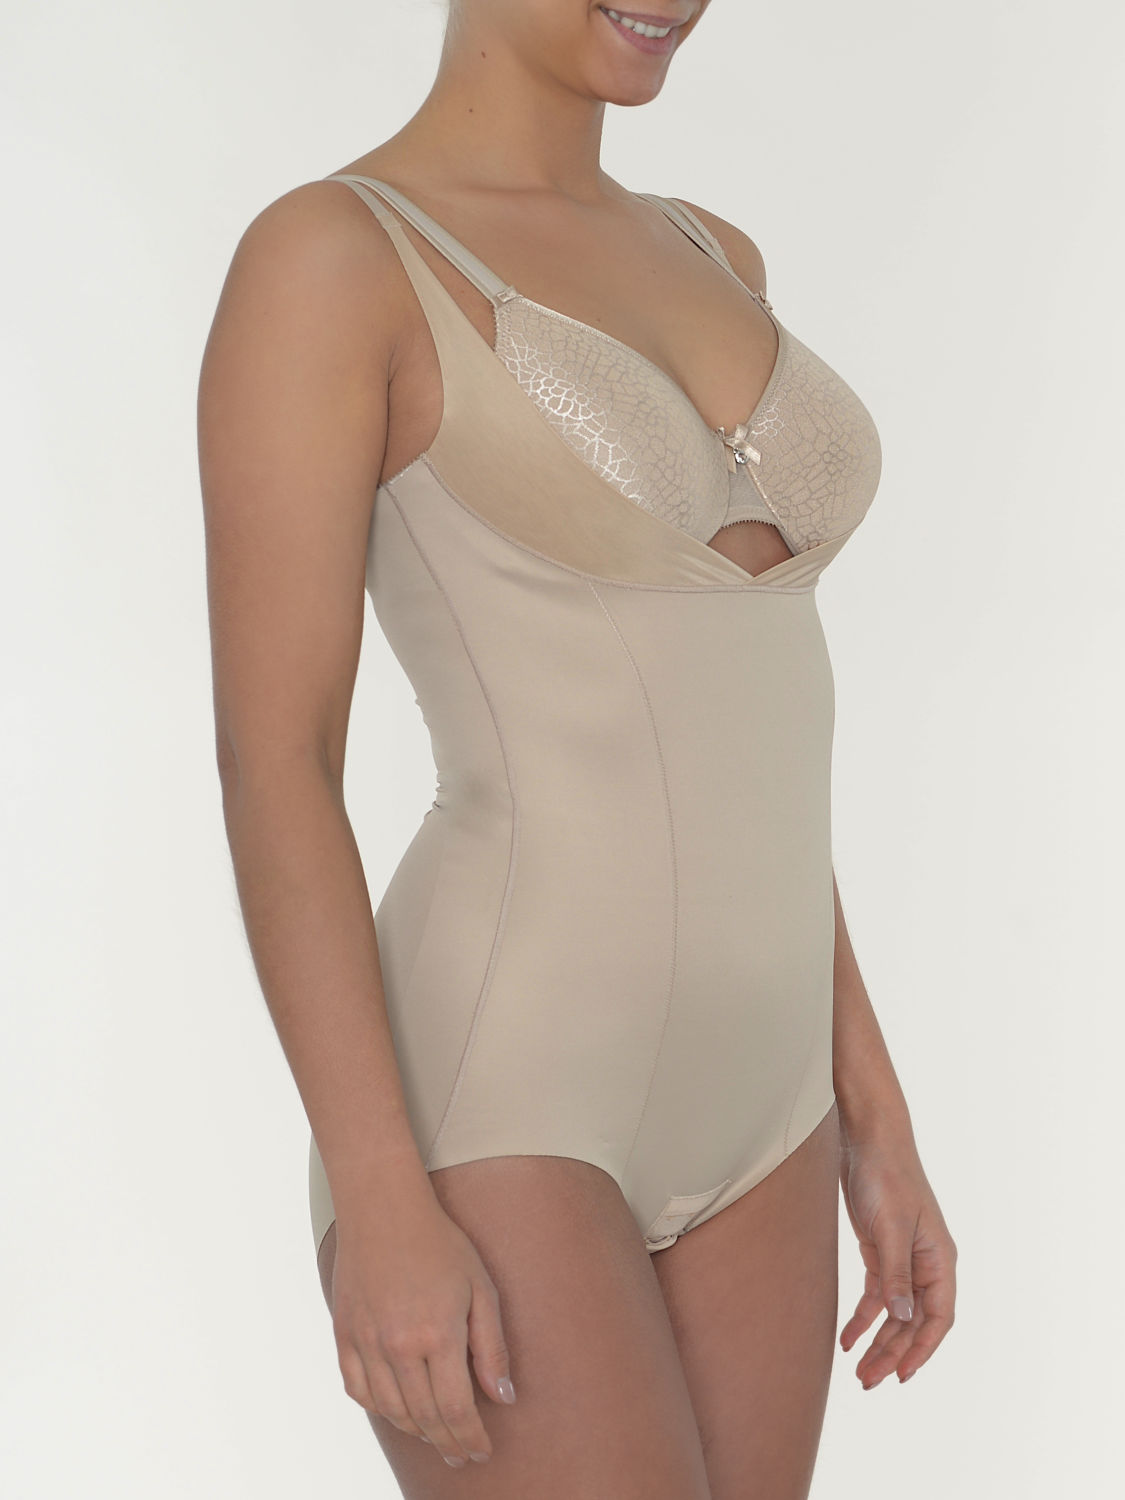 Nude Farbe Chantelle Body Basic Shaping Farbe Nude 3508 Online Bestellen Bei